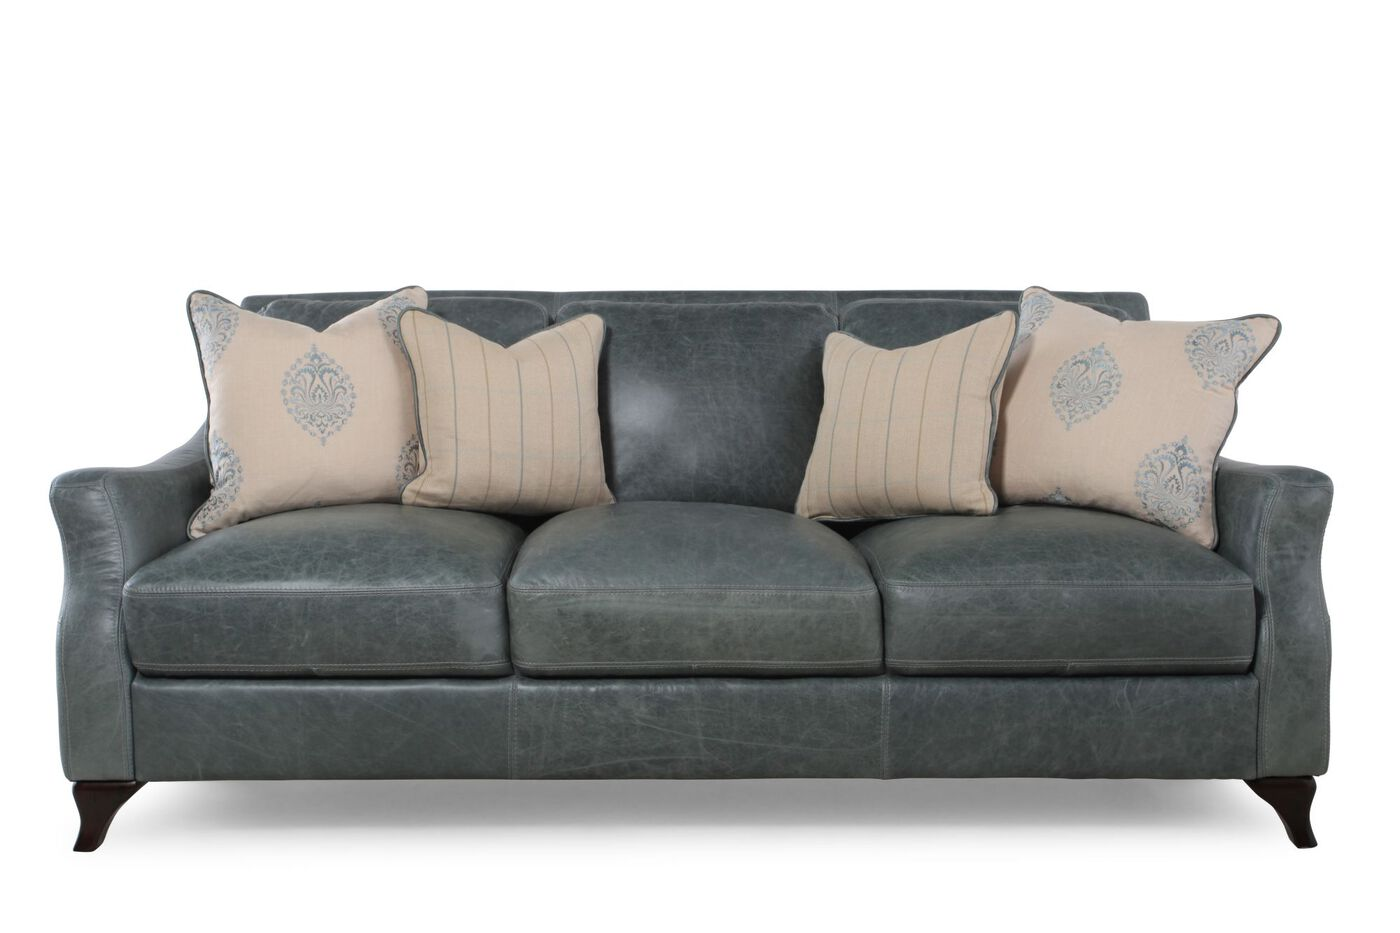 Blue leather sofa mathis brothers Blue leather sofa